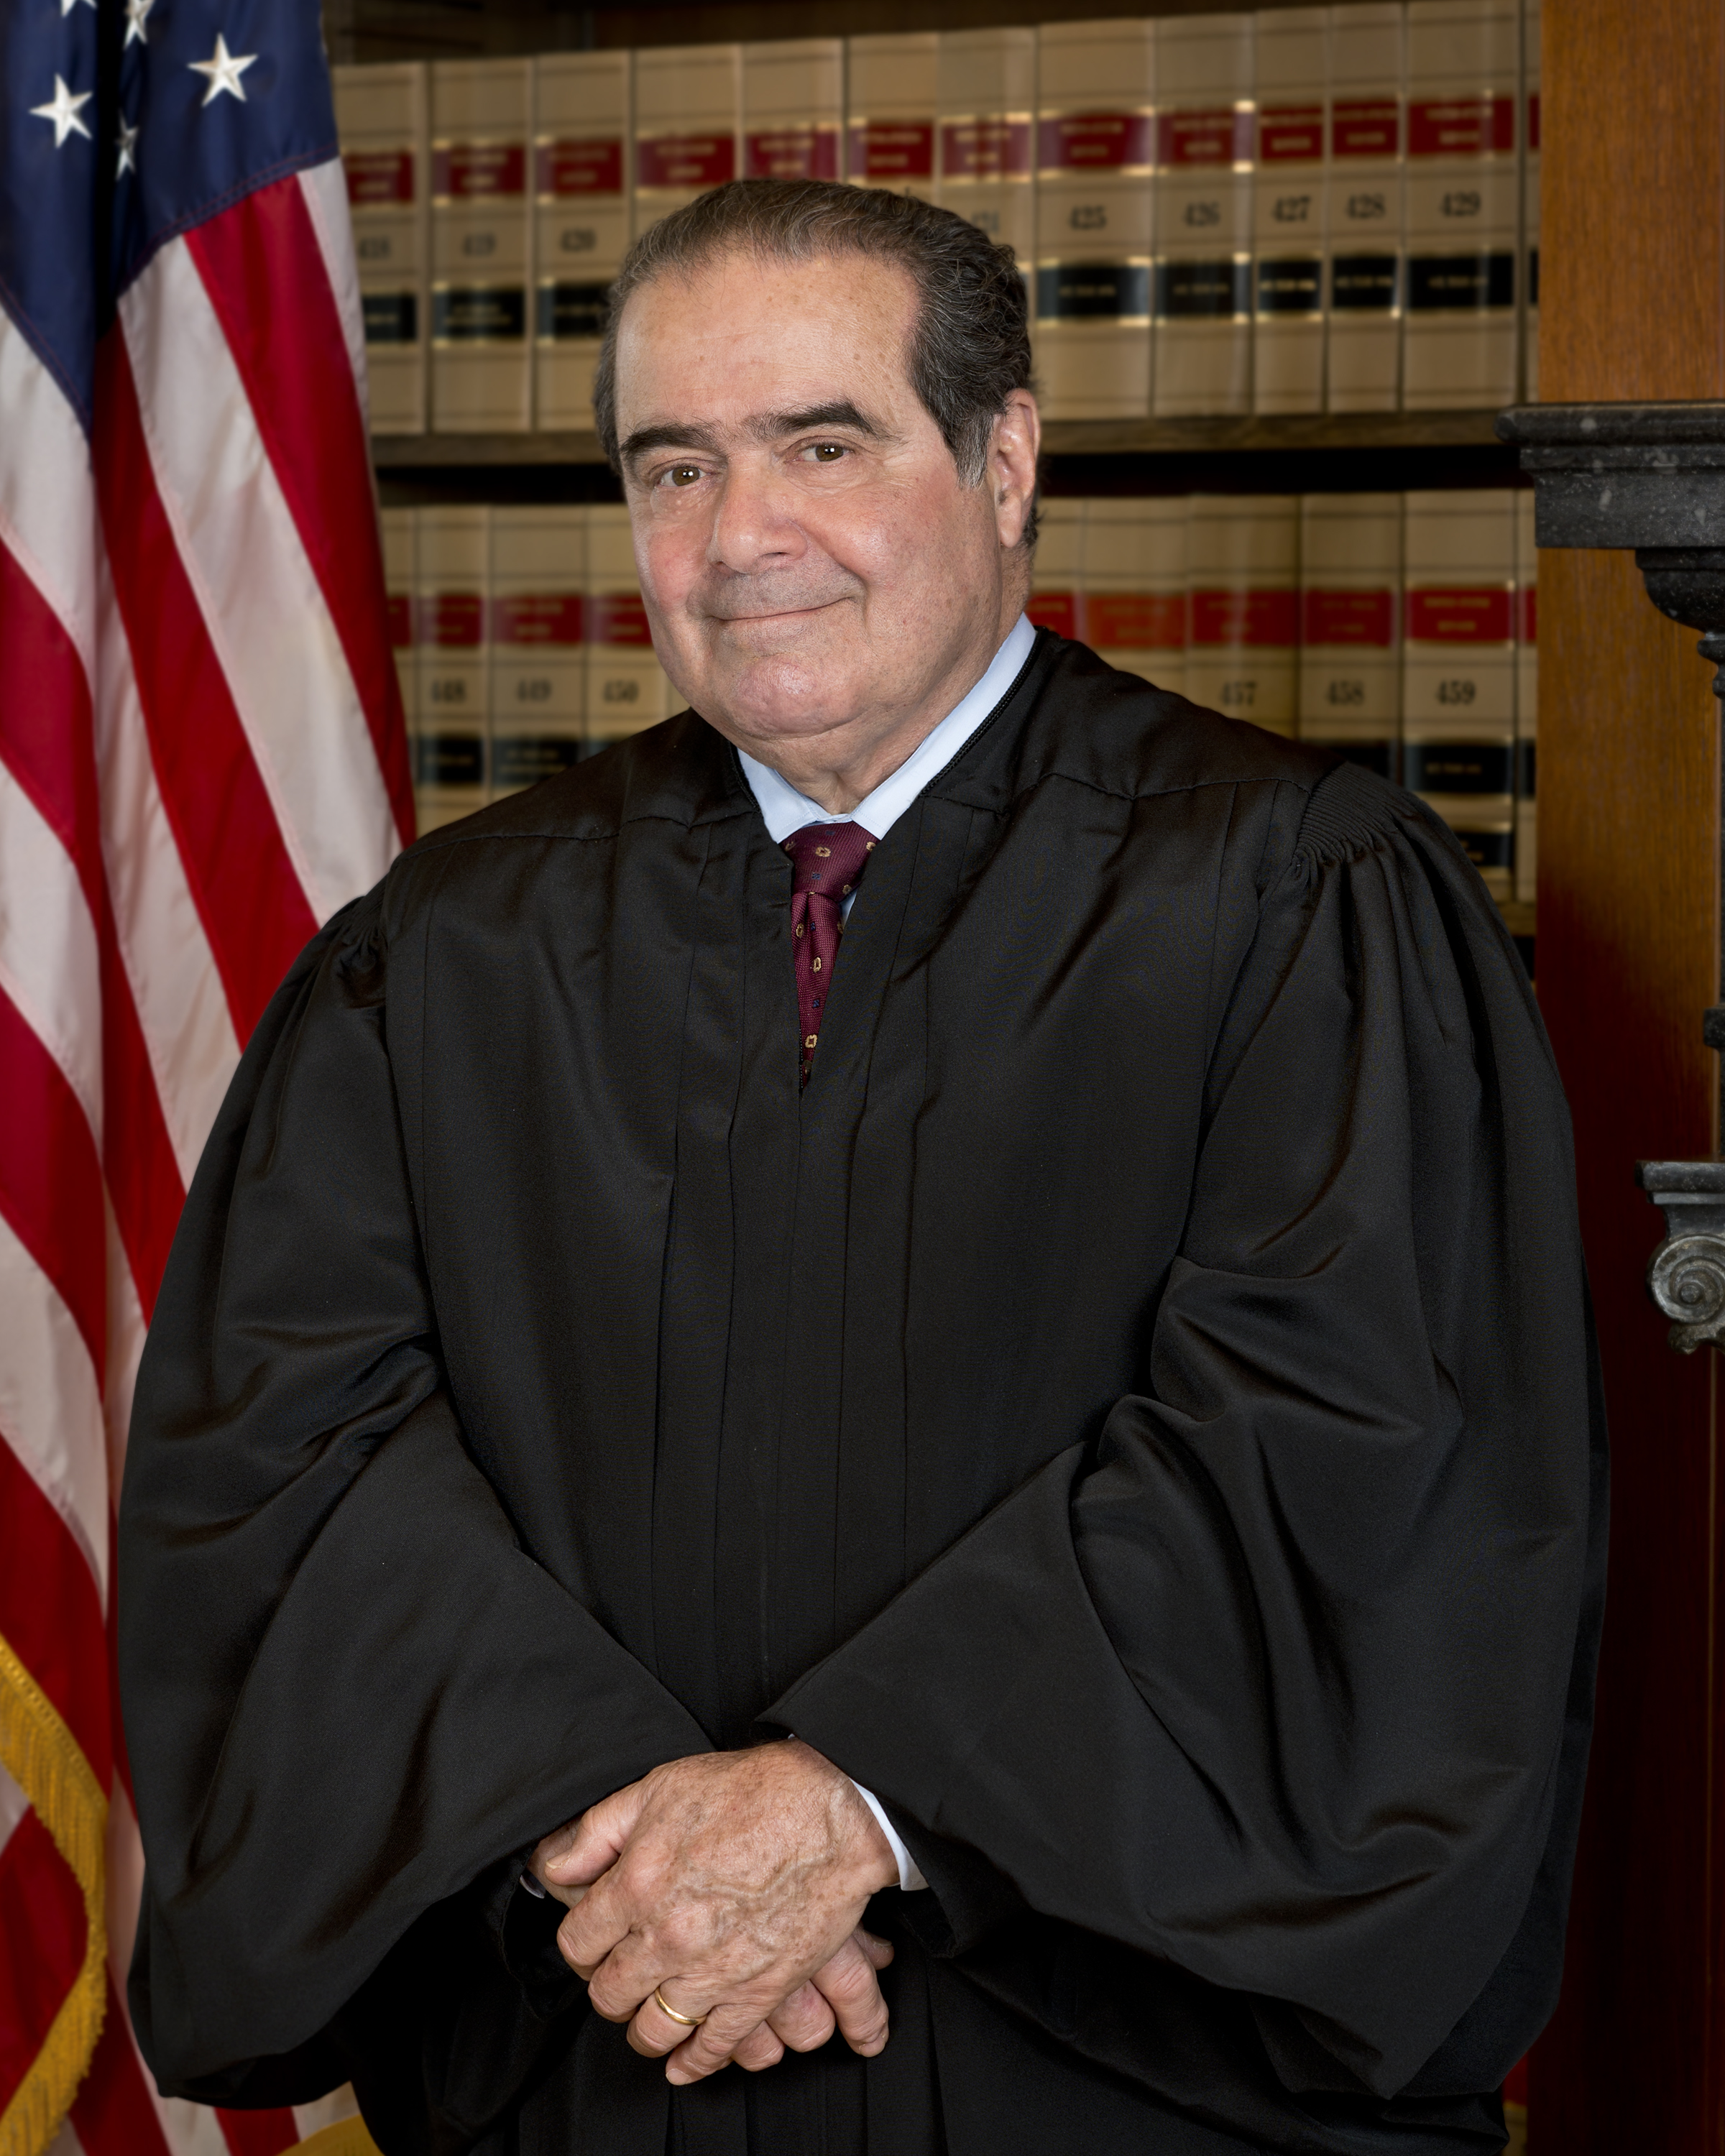 Mike Berman on Justice Scalia's death and how it applis to modern business leadership